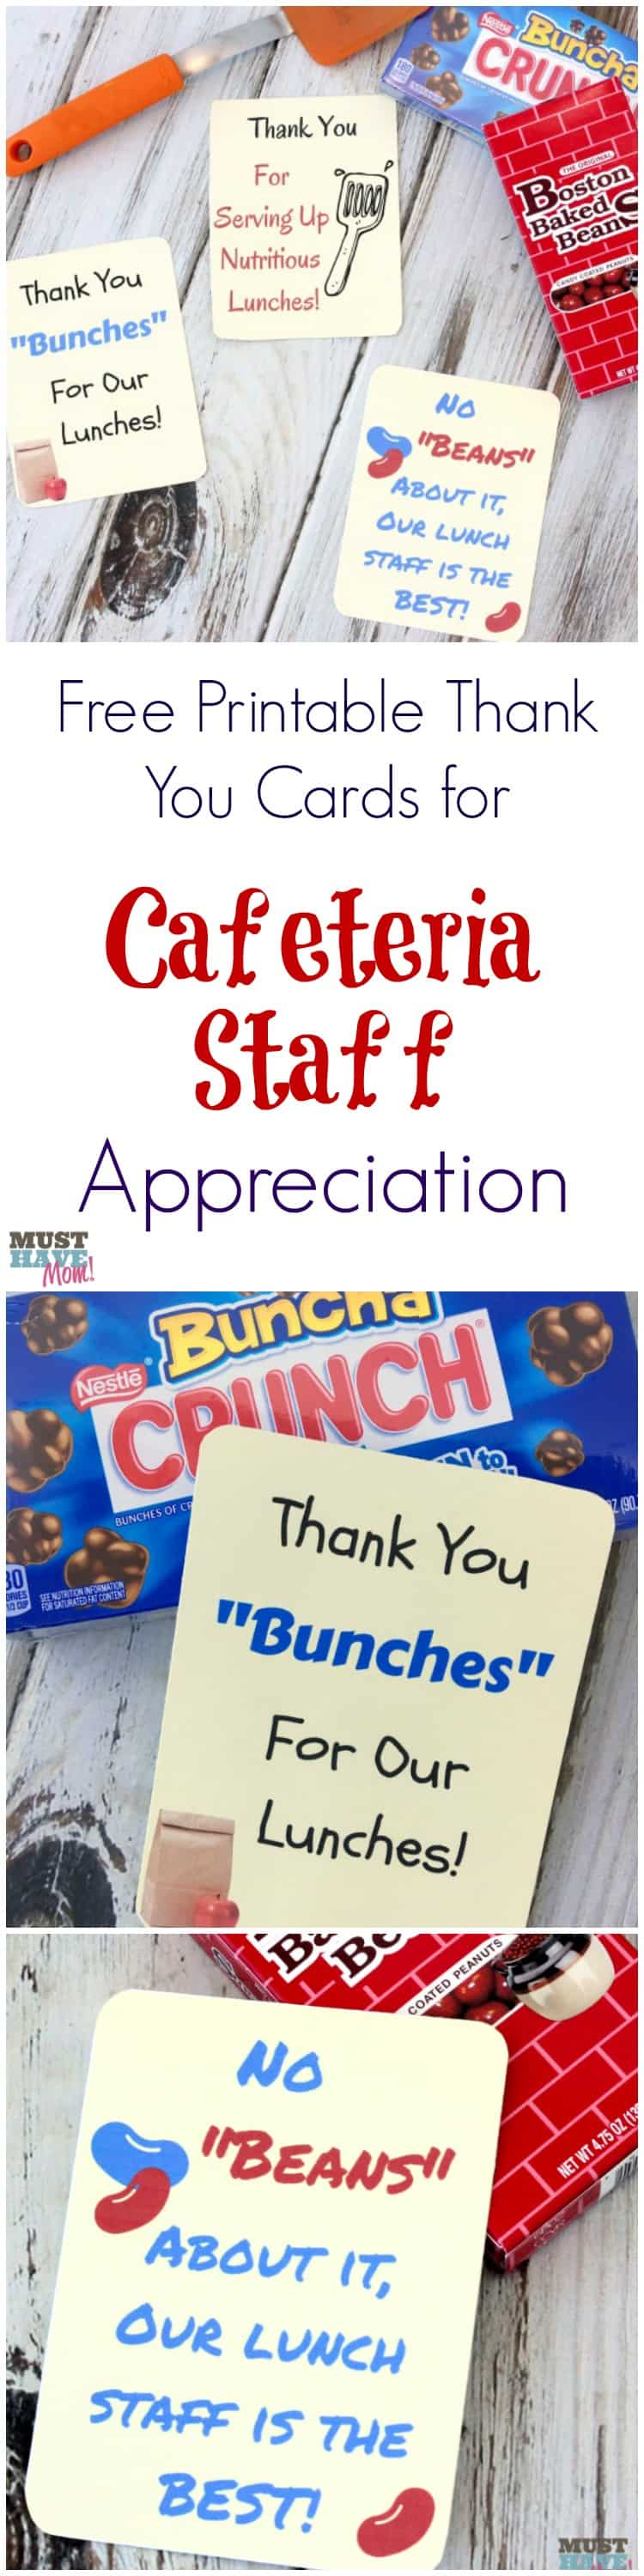 free school lunch hero day printable thank you cards for cafeteria